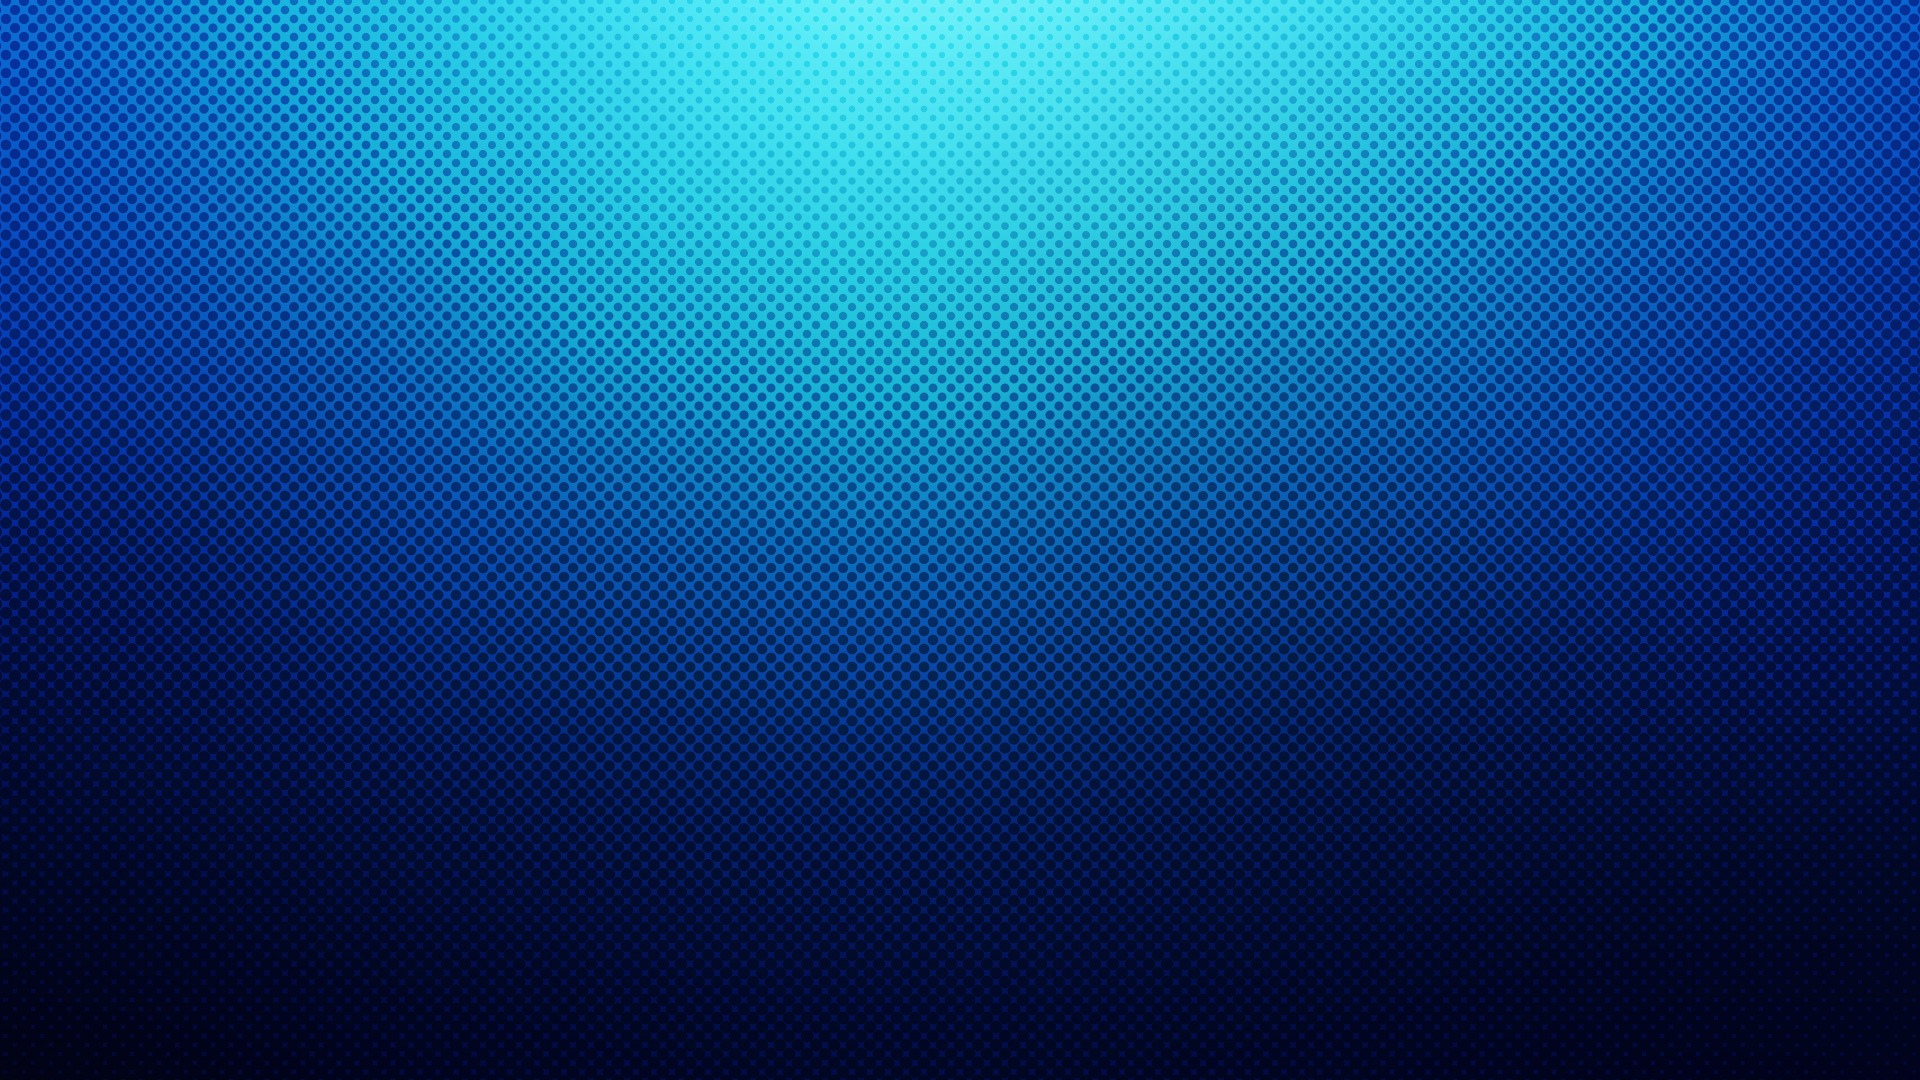 wallpaper background gradient blue - photo #3